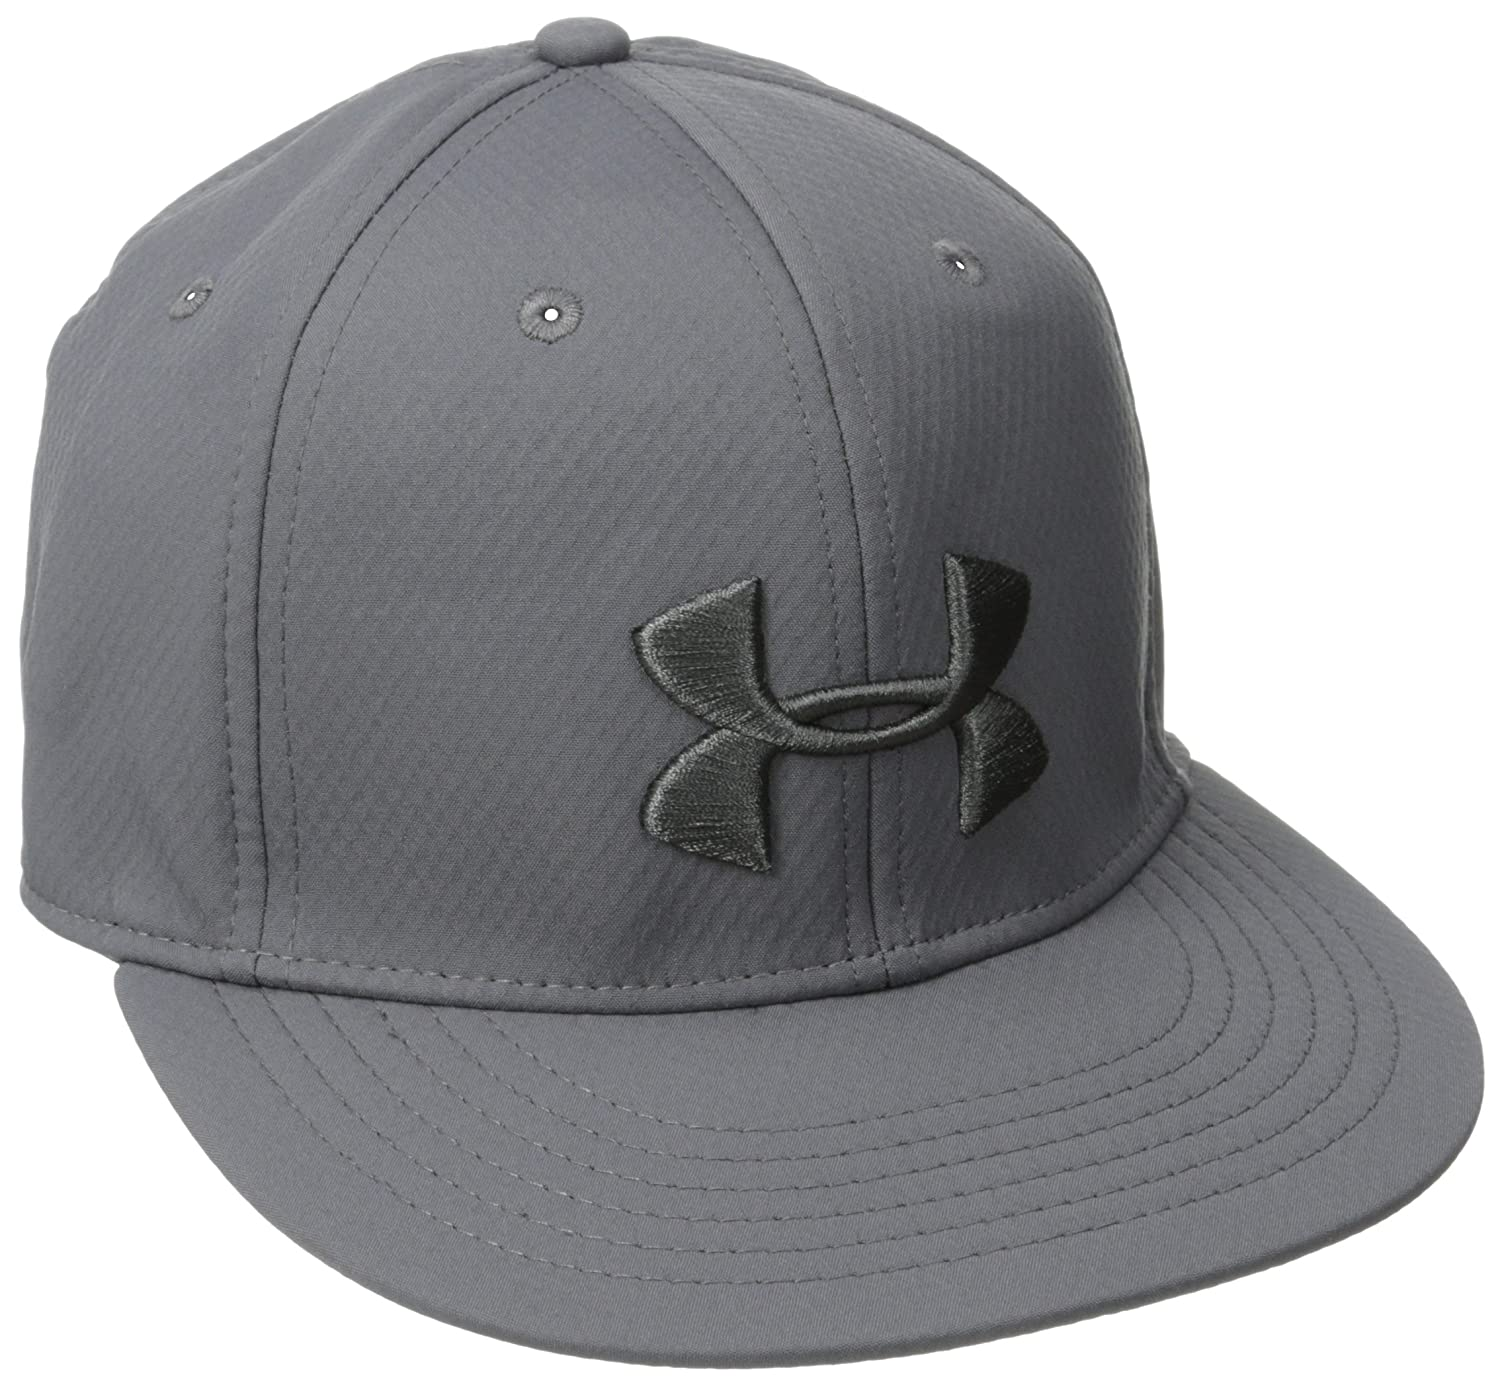 bc82bd9842c Amazon.com  Under Armour Men s Elevated Flat Brim Cap